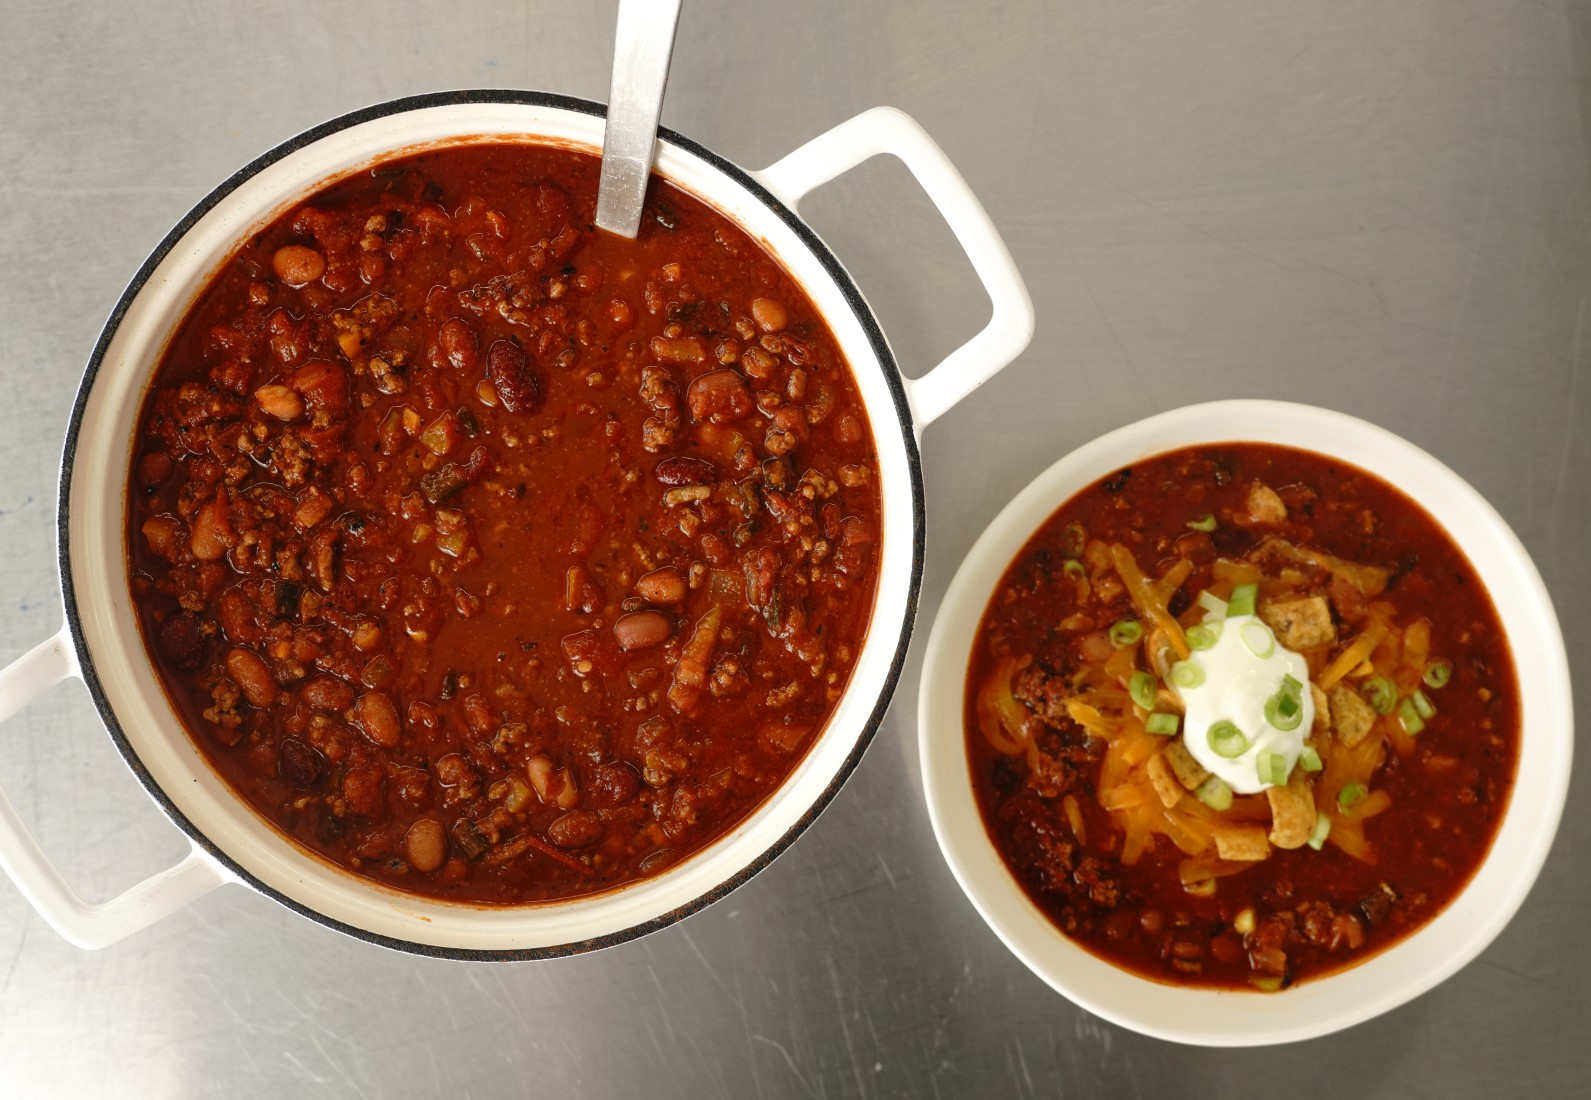 overhead shot of a pot of chili next to a bowl of chili topped with shredded cheese, corn chips, sliced scallions, and sour cream